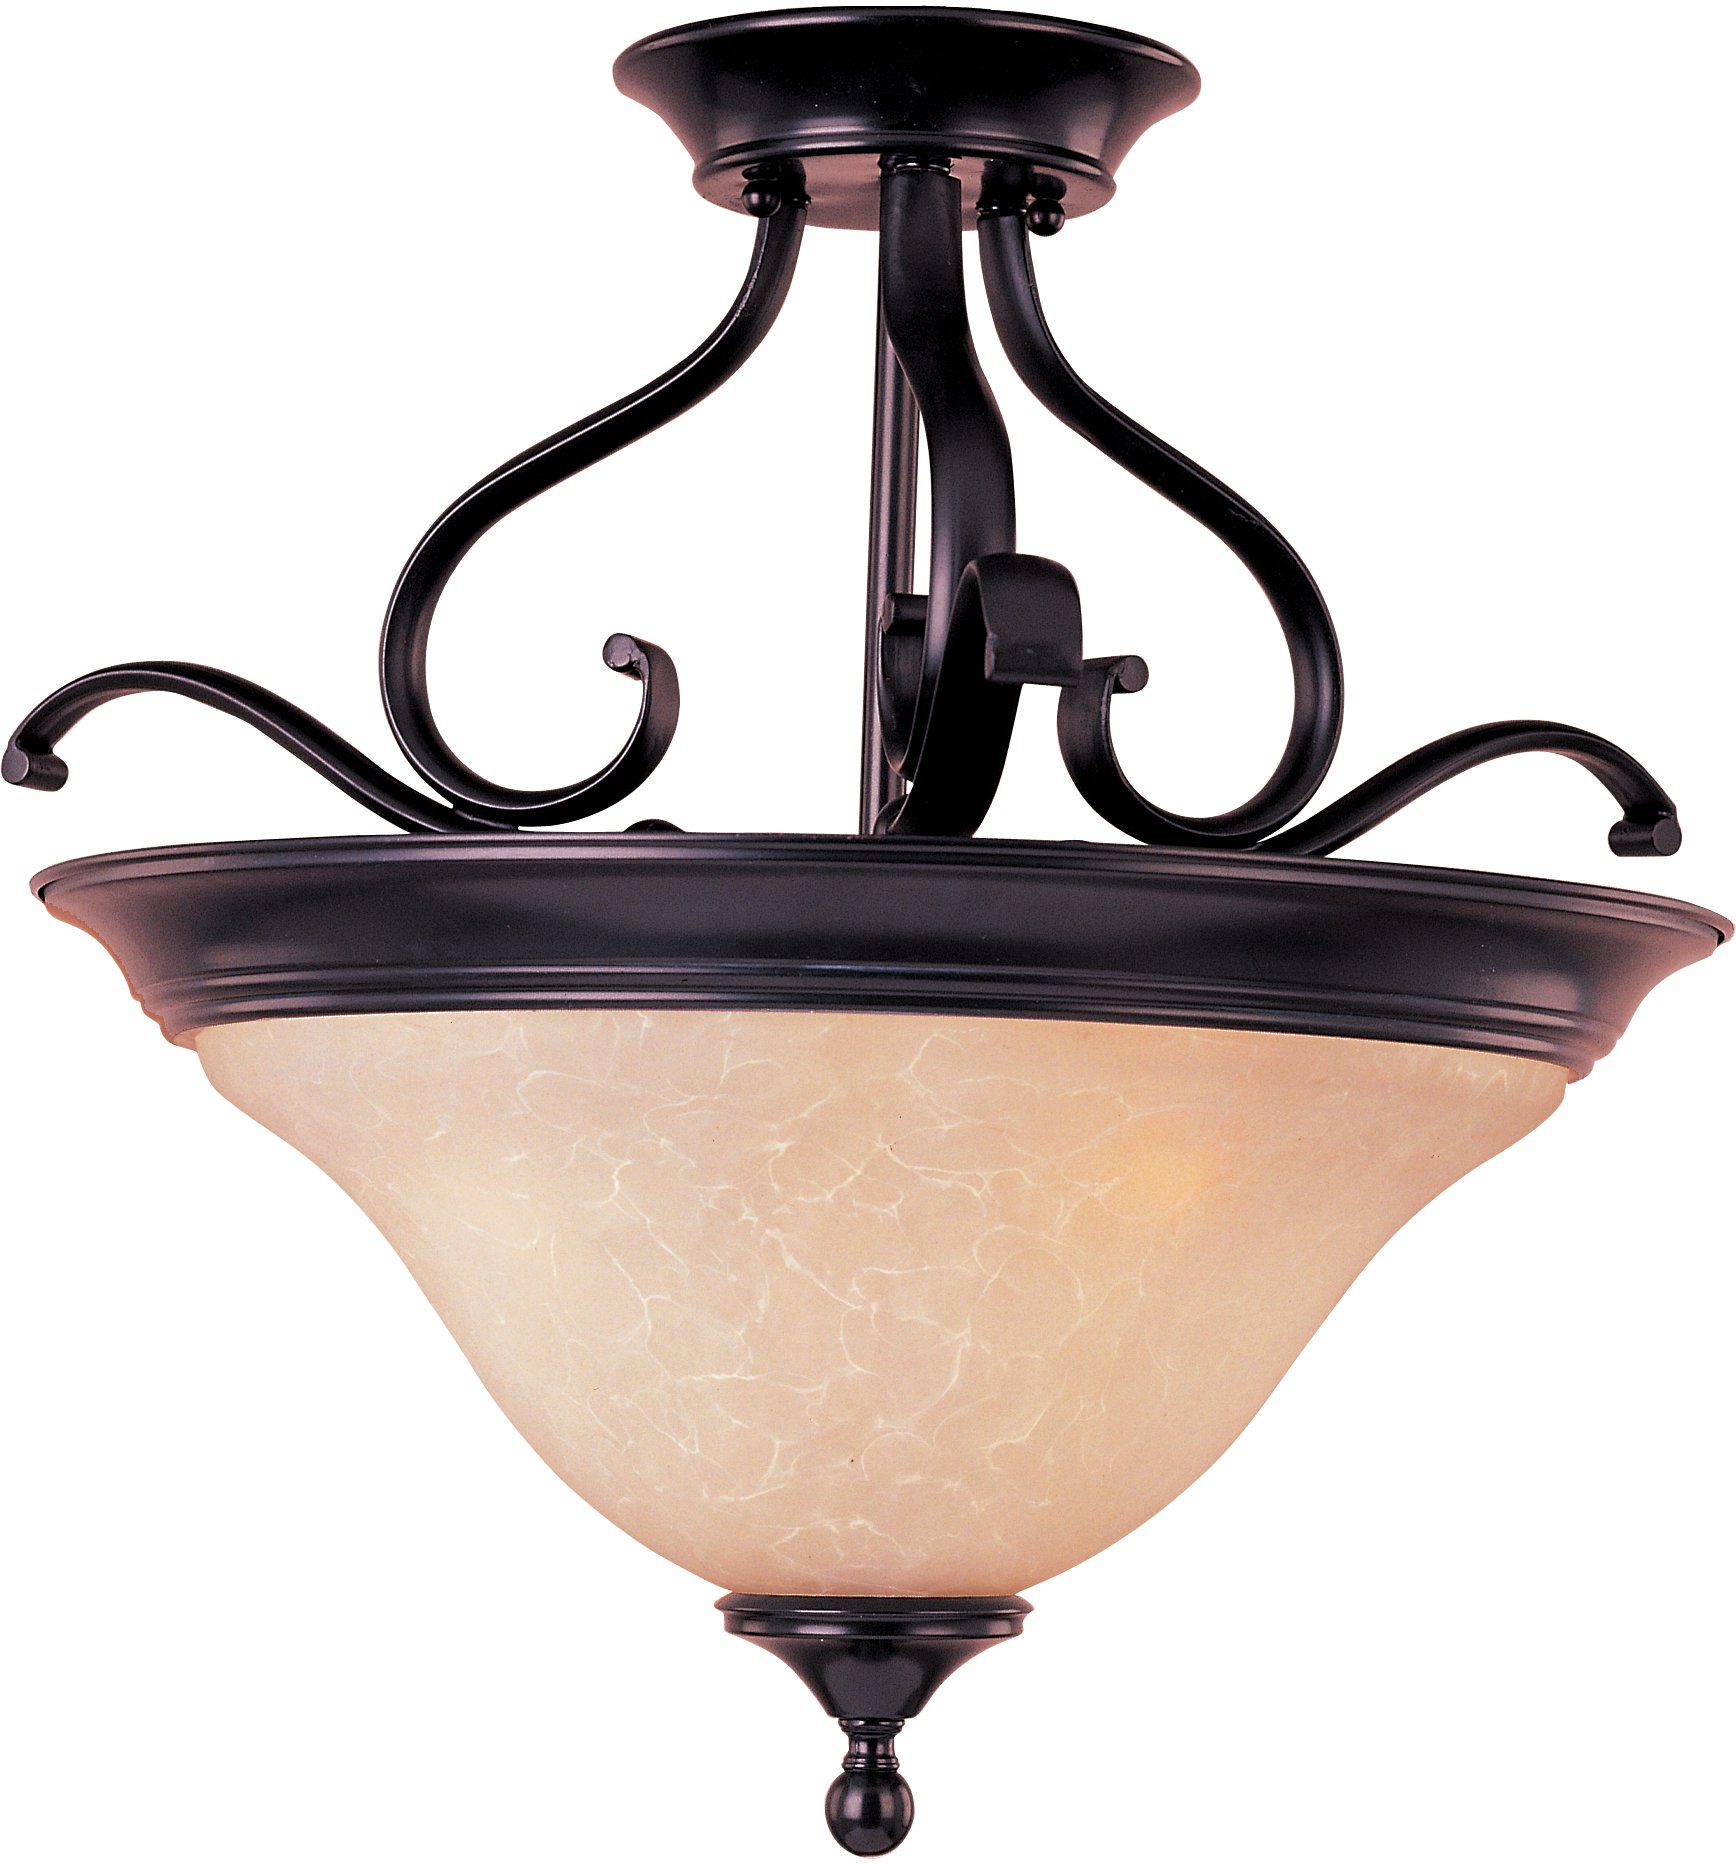 Maxim 85802WSOI Linda EE 3-Light Semi-Flush Mount, Oil Rubbed Bronze Finish, Wilshire Glass, GU24 Fluorescent Bulb , 100W Max., Dry Safety Rating, Standard Dimmable, Glass Shade Material, 1150 Rated Lumens